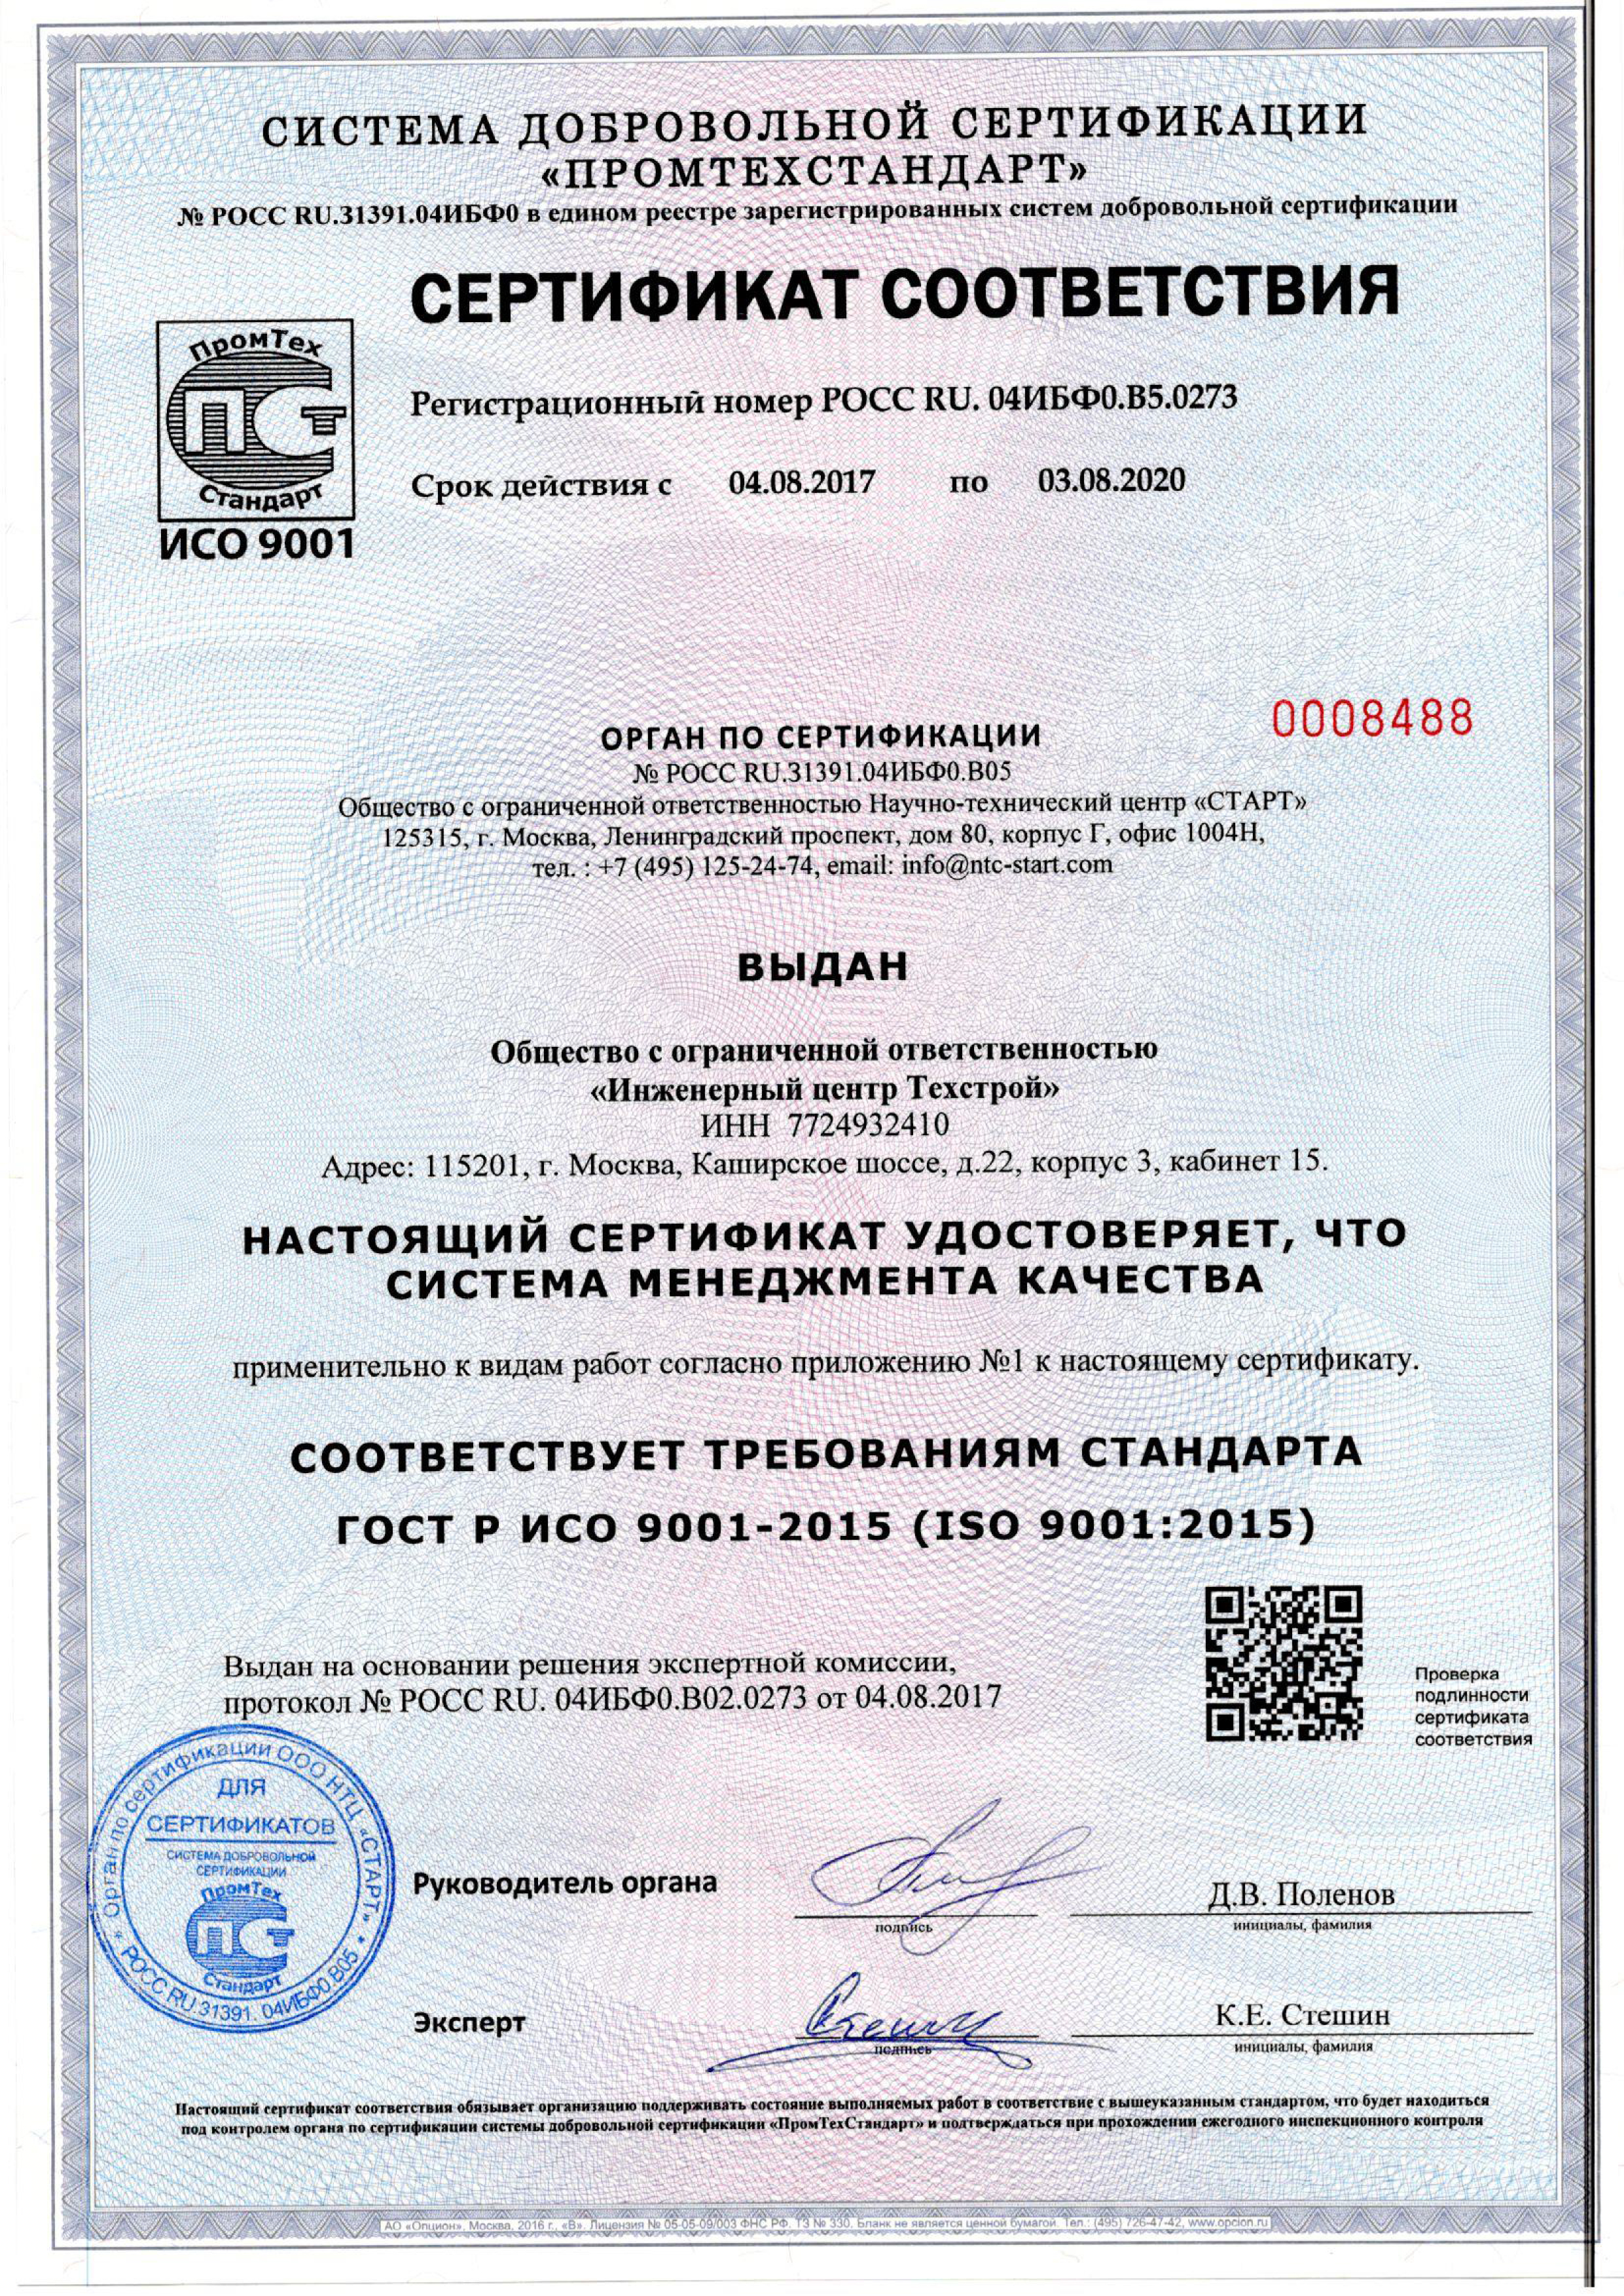 Certificate of Conformity to the Requirements of GOST R ISO (Quality Management System)-3